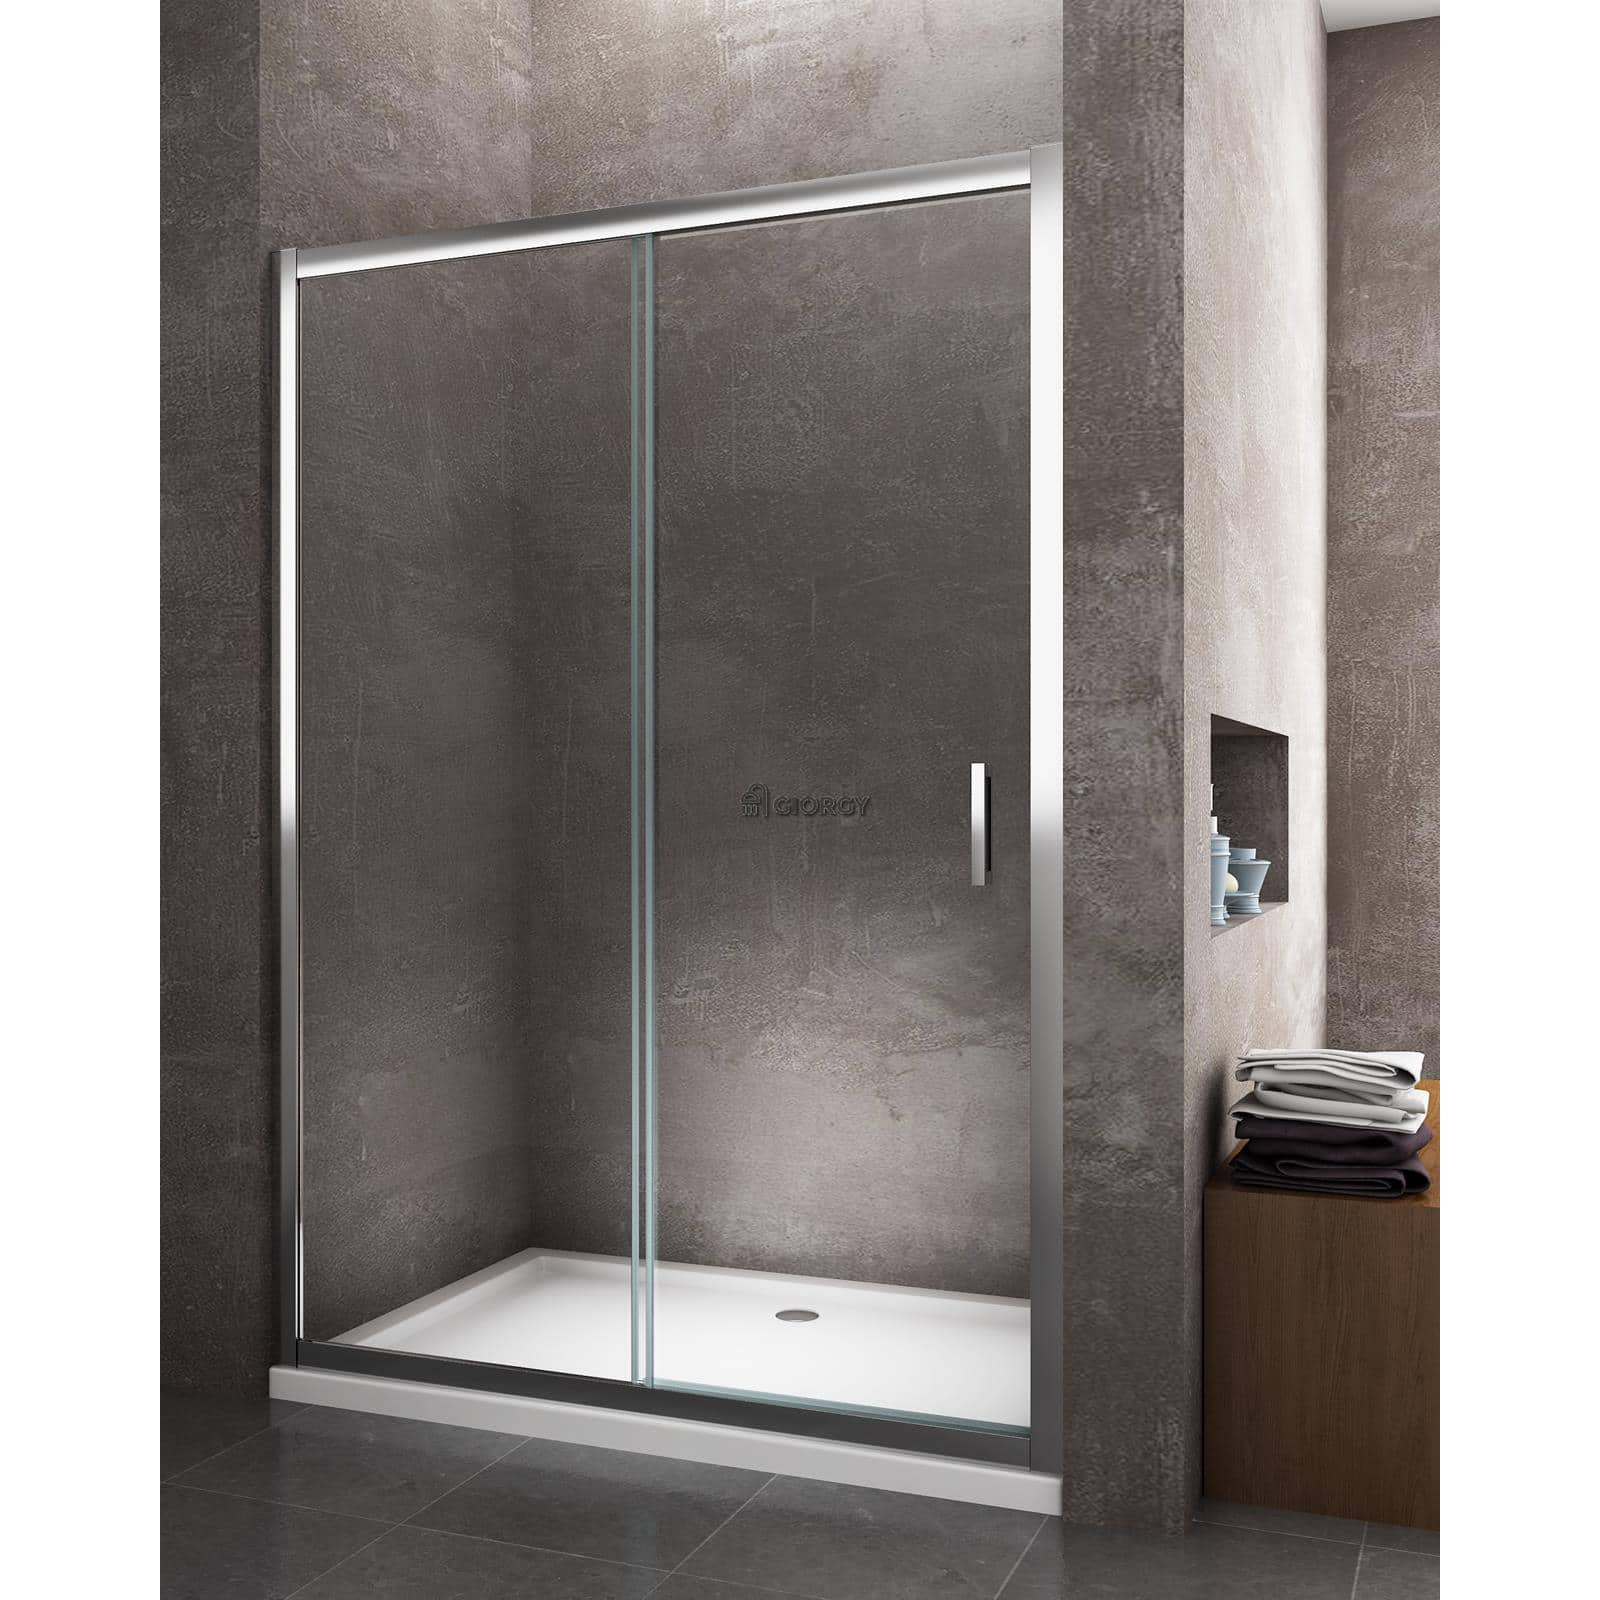 porte douche glissant niche 110 111 112 113 114 115 h 190 cm cristal 6 mm ebay. Black Bedroom Furniture Sets. Home Design Ideas